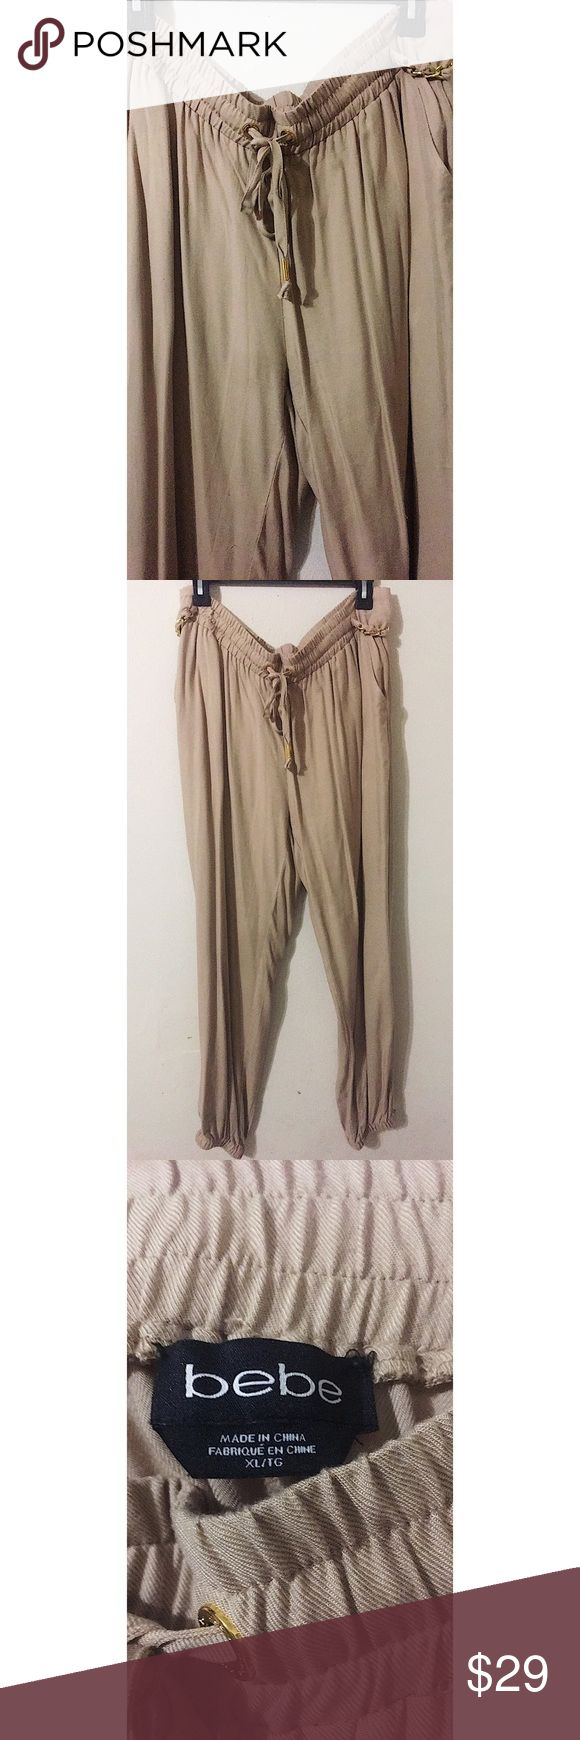 💋 Bebe cuffed jogger pants 💝 Tan cuffed jogger pants with gold chain details on sides. Bebe gold detail on back pocket. Drawstring elastic waistband for comfort and adjustment. Functional front pockets. 100% Rayon. I love the soft material. High quality material with a little wear as shown in picture. Last photo does not reflect true color. True color shown in first photos. 💕 bebe Pants Track Pants & Joggers